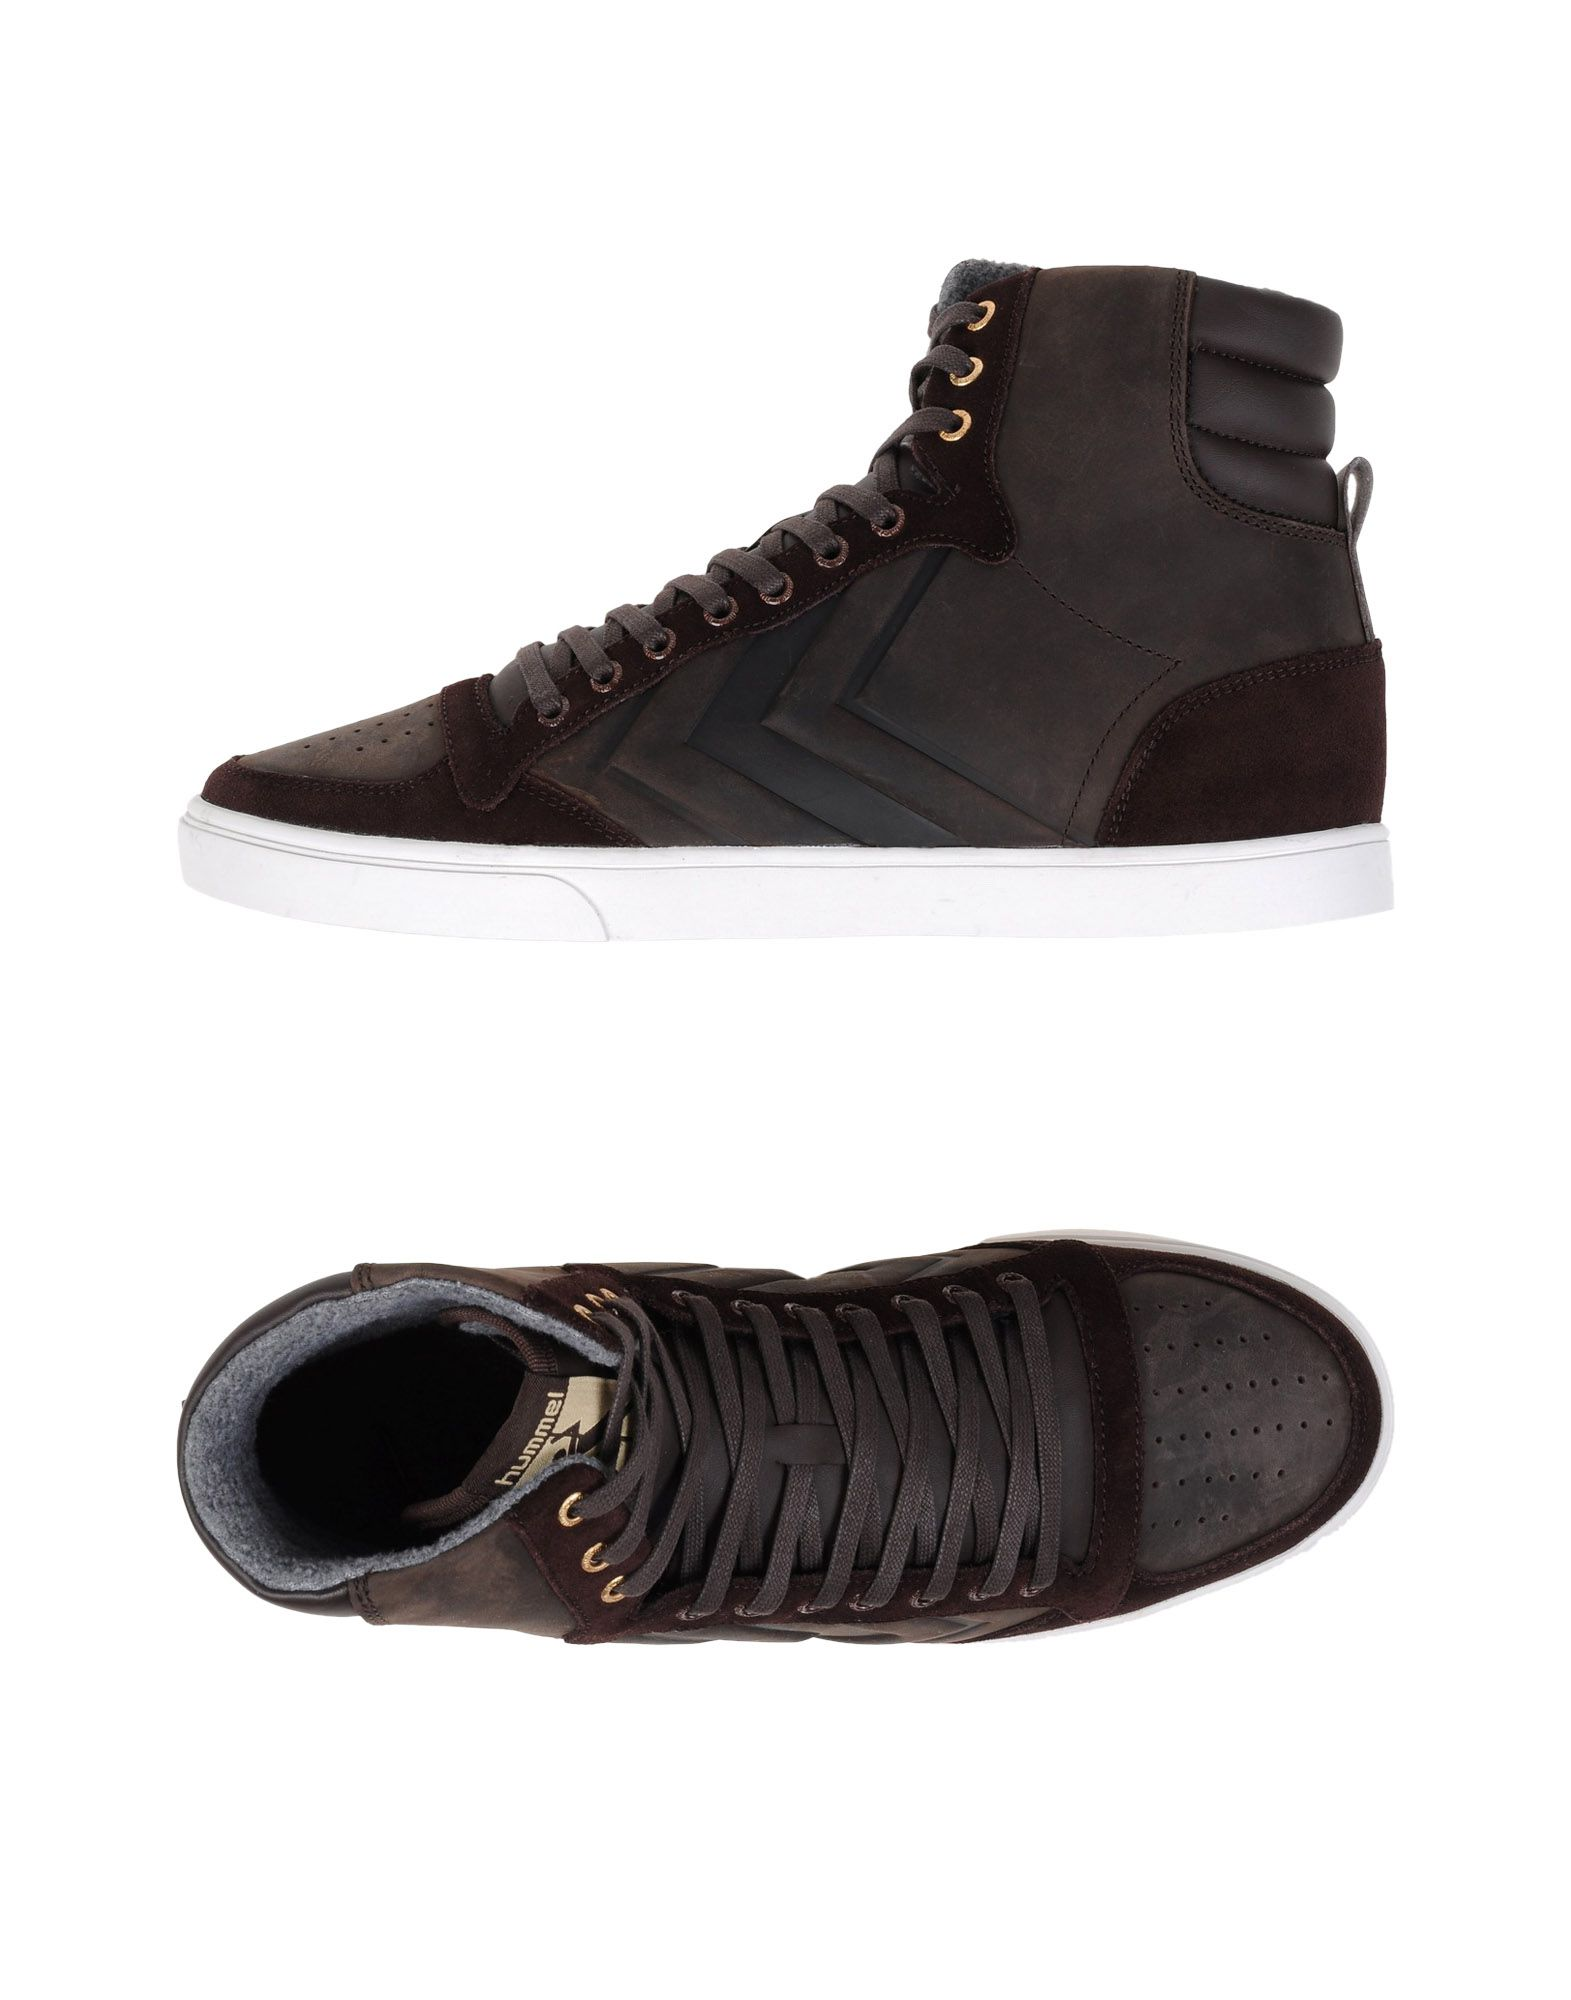 Sneakers Hummel Slimmer Stadil Mono Oiled High - Homme - Sneakers Hummel sur